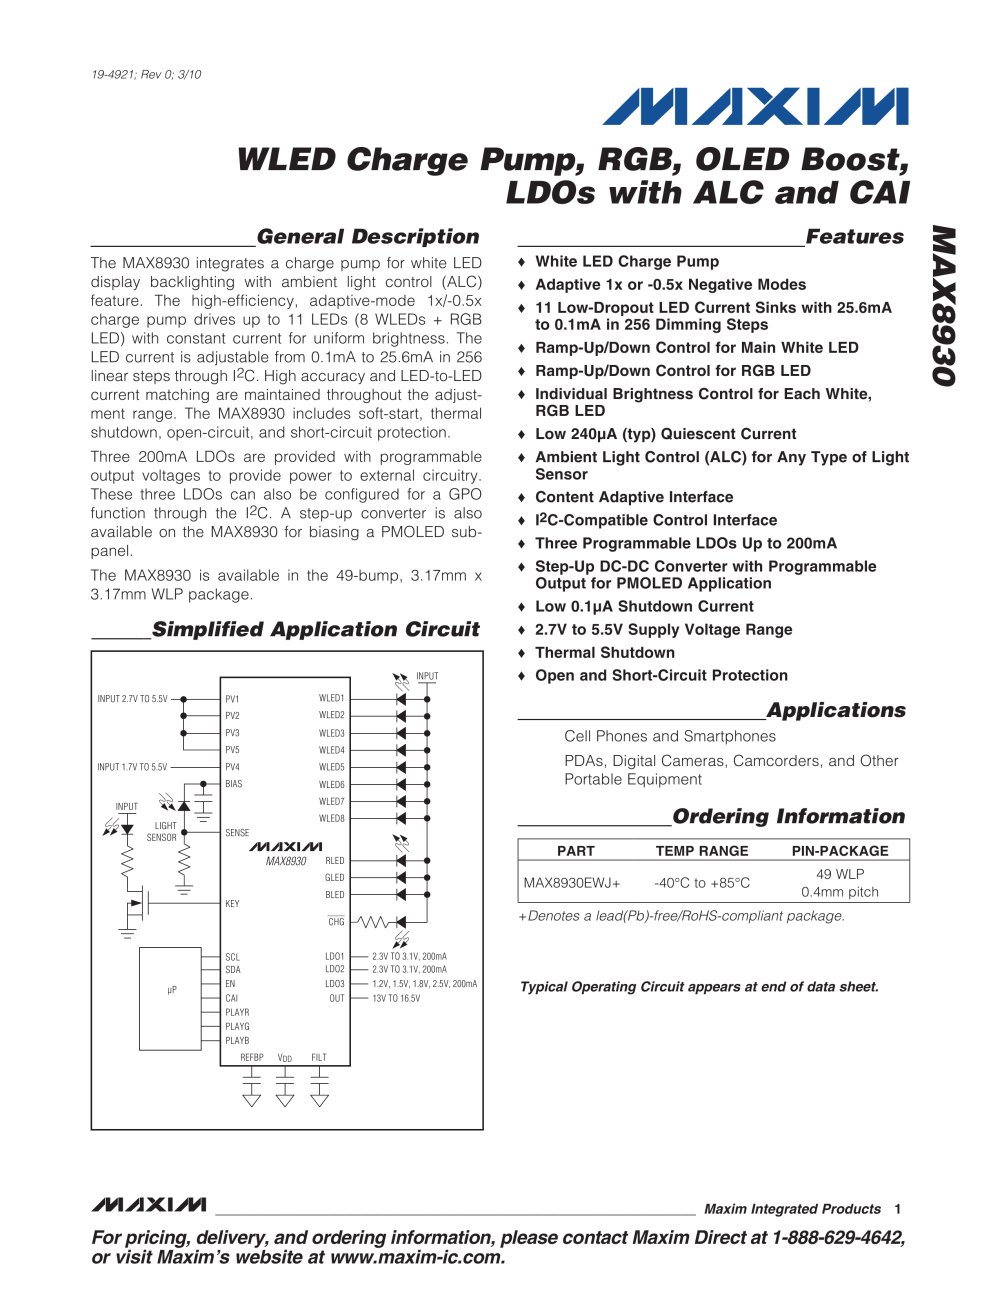 Max8930 Wled Charge Pump Rgb Oled Boost Ldos With Alc And Cai Transimpedance Amplifier Gas Station Without Pumps 1 52 Pages